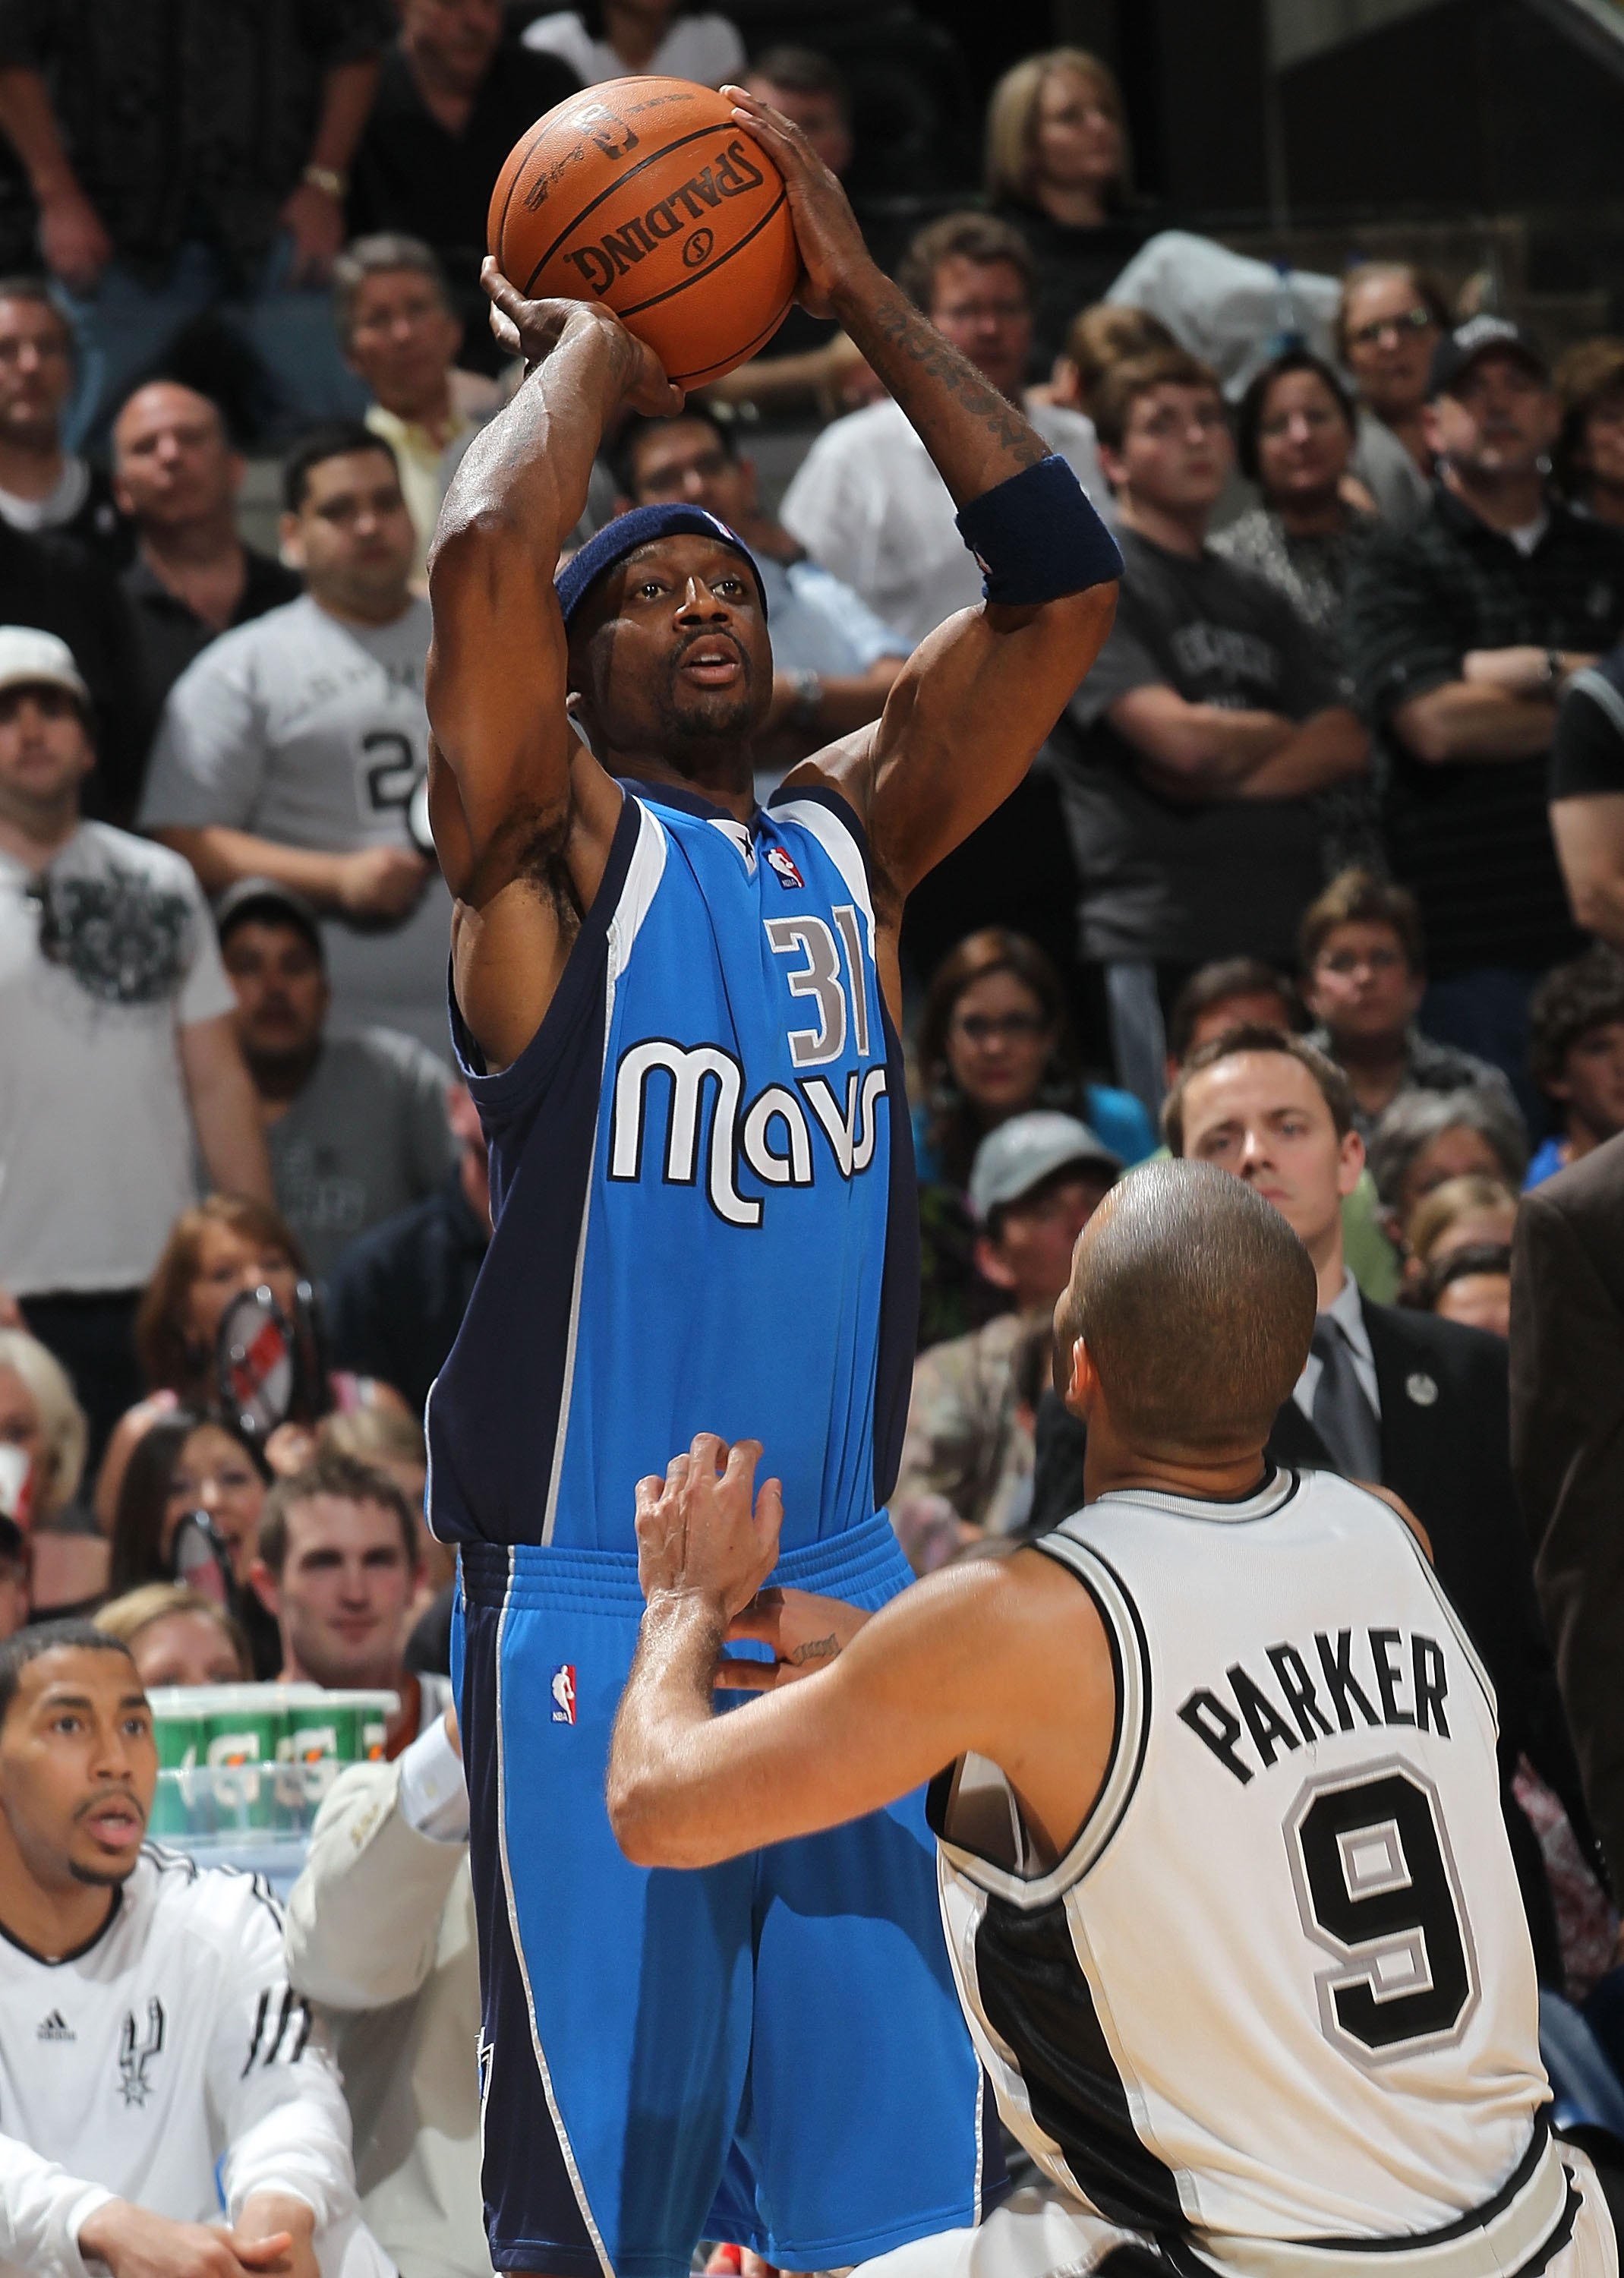 SAN ANTONIO - APRIL 25:  Jason Terry #31 of the Dallas Mavericks in Game Four of the Western Conference Quarterfinals during the 2010 NBA Playoffs at AT&T Center on April 25, 2010 in San Antonio, Texas. NOTE TO USER: User expressly acknowledges and agrees